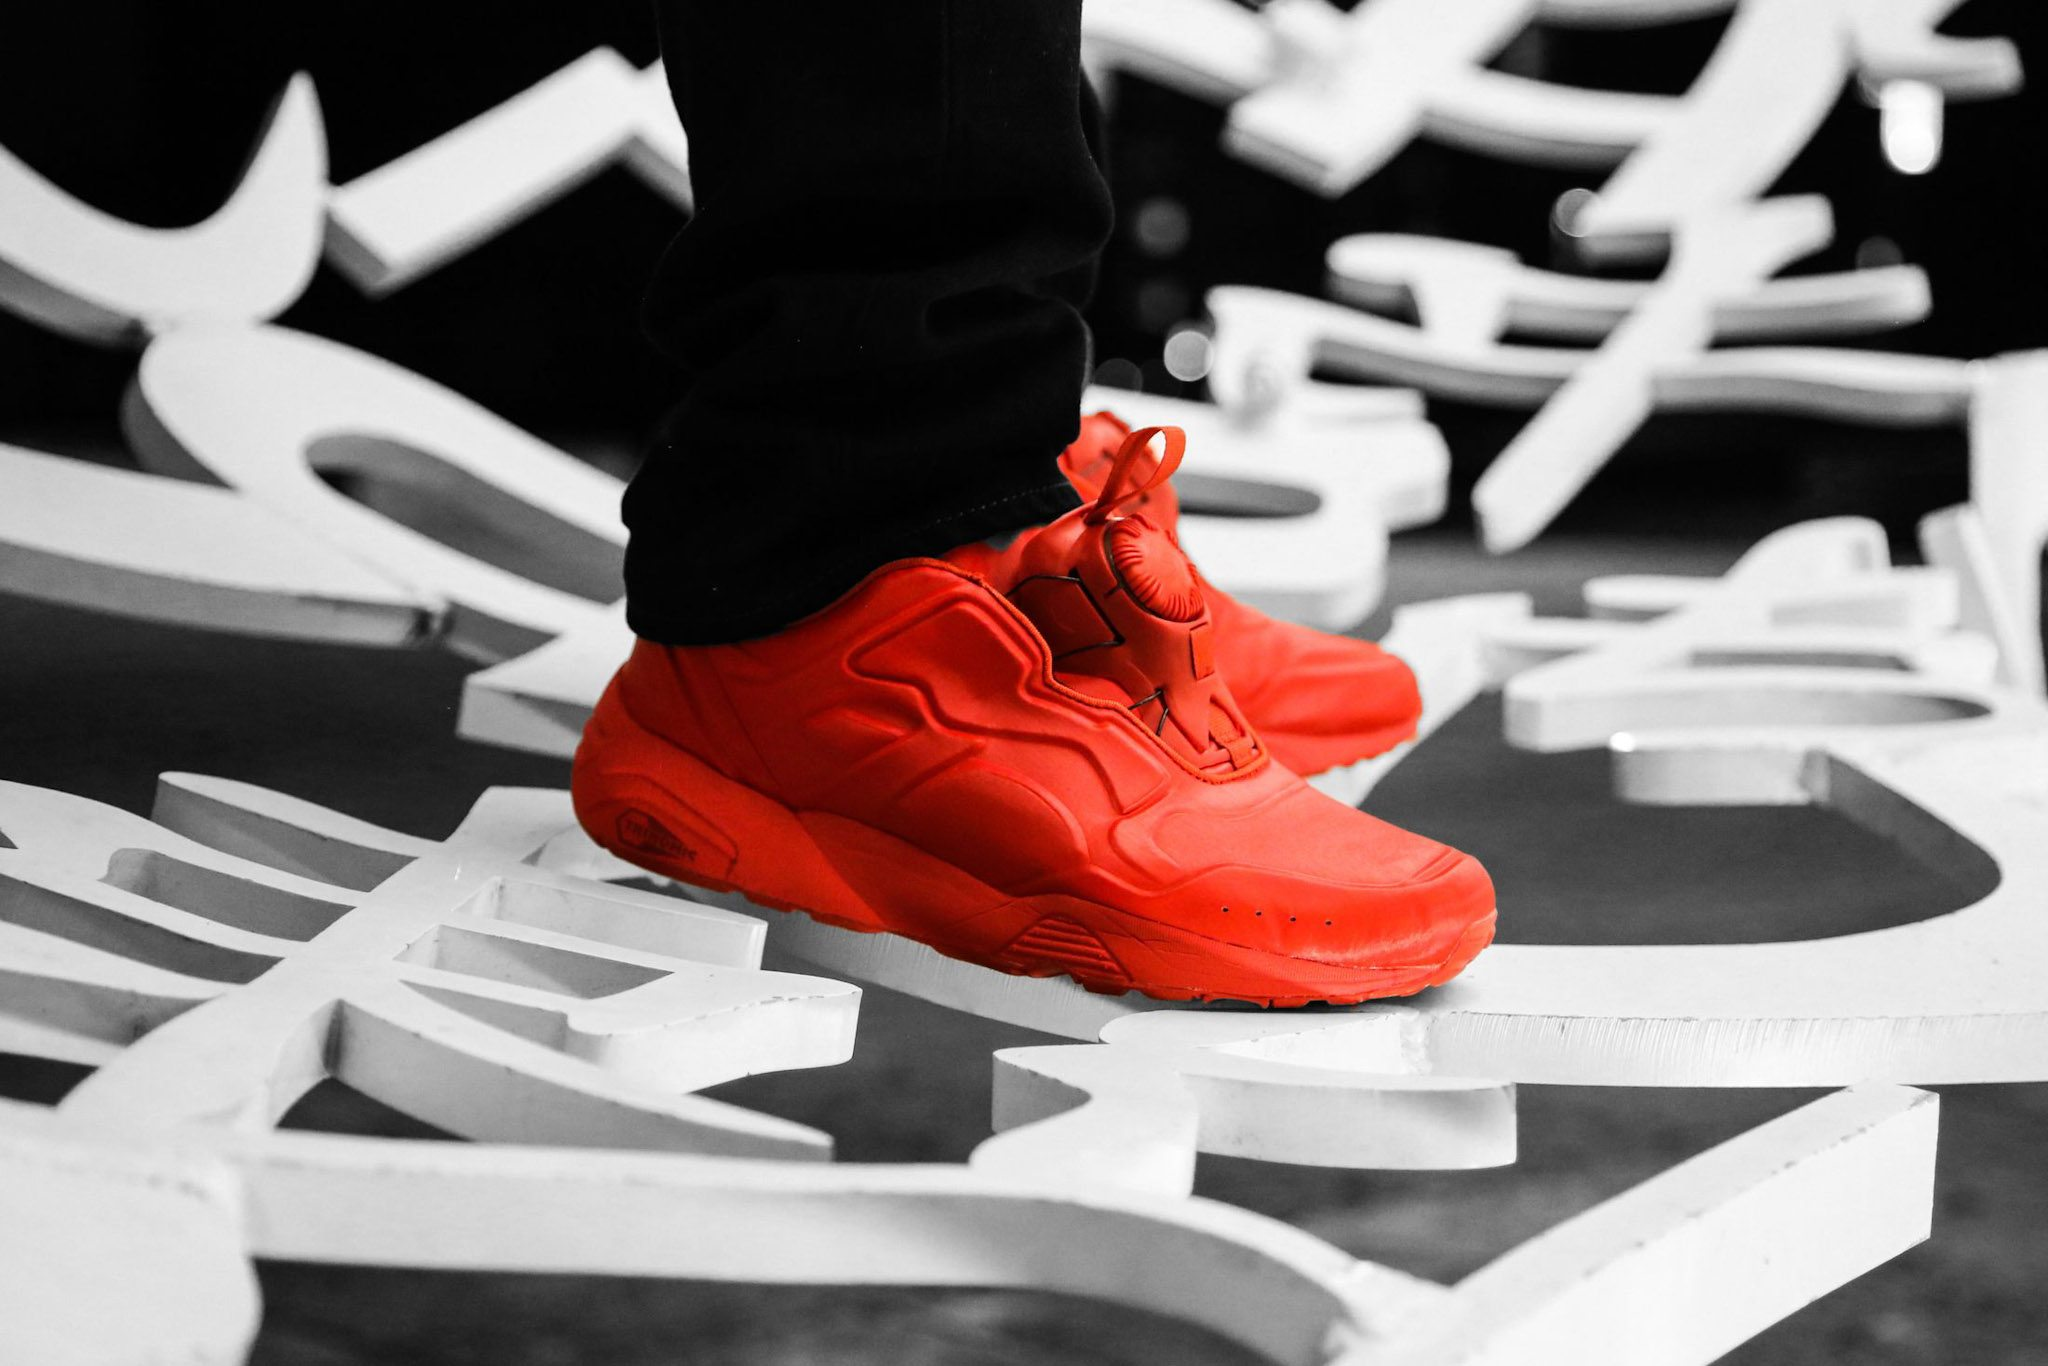 PUMA DISC 89 All Red All Black 2